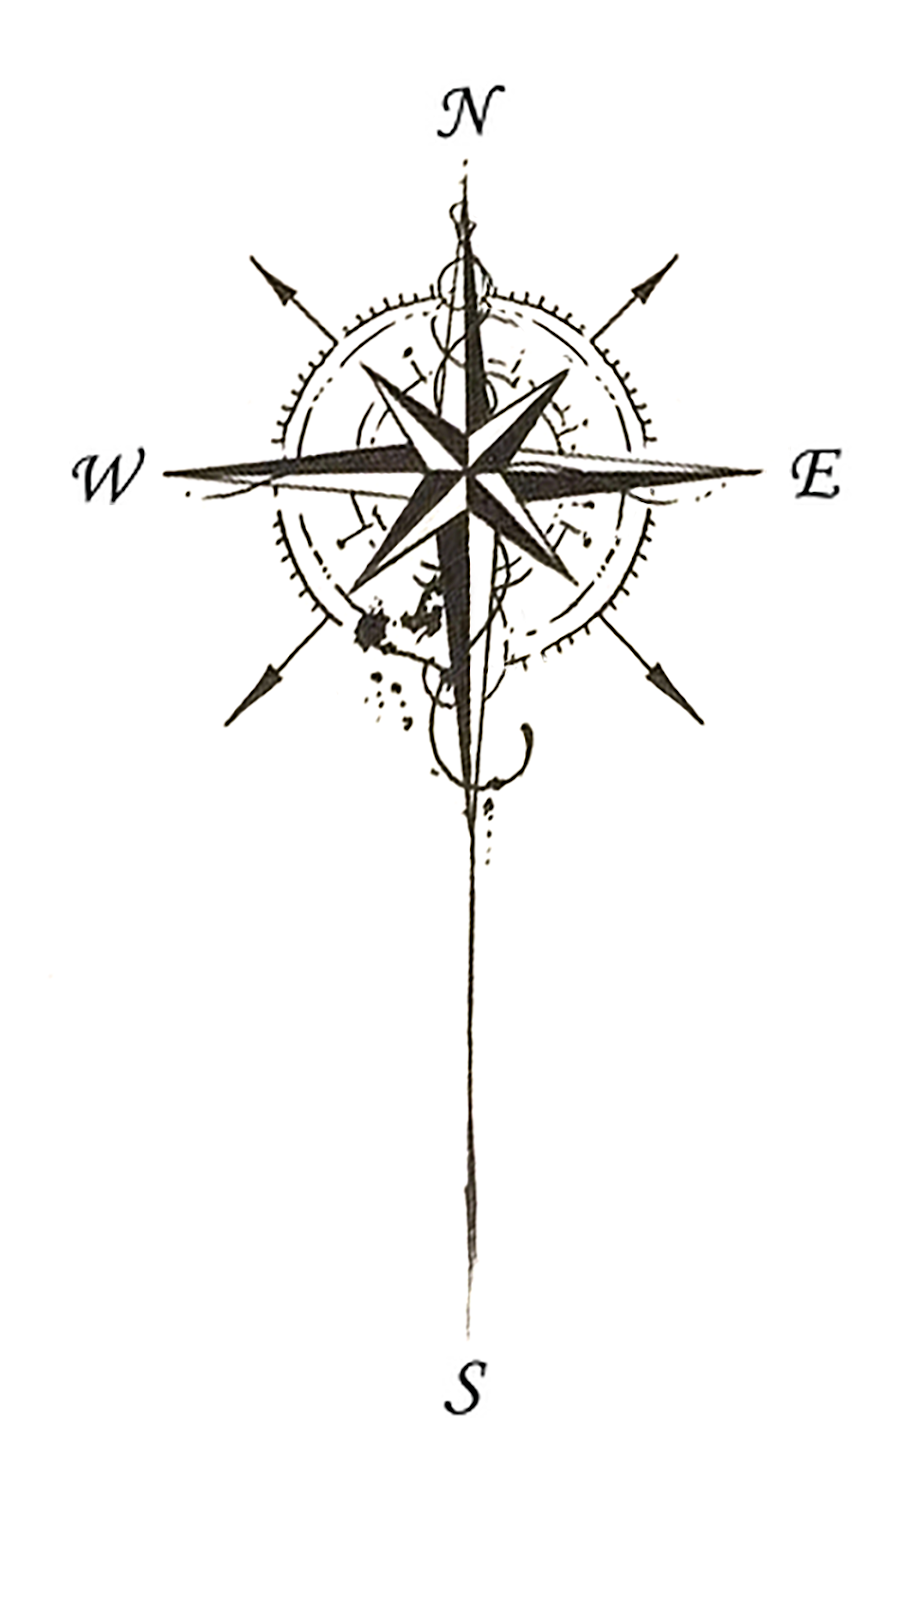 100 Awesome Compass Tattoo Ideas Thetellmewhy Compass Tattoo Compass Tattoo Design Tattoo Designs